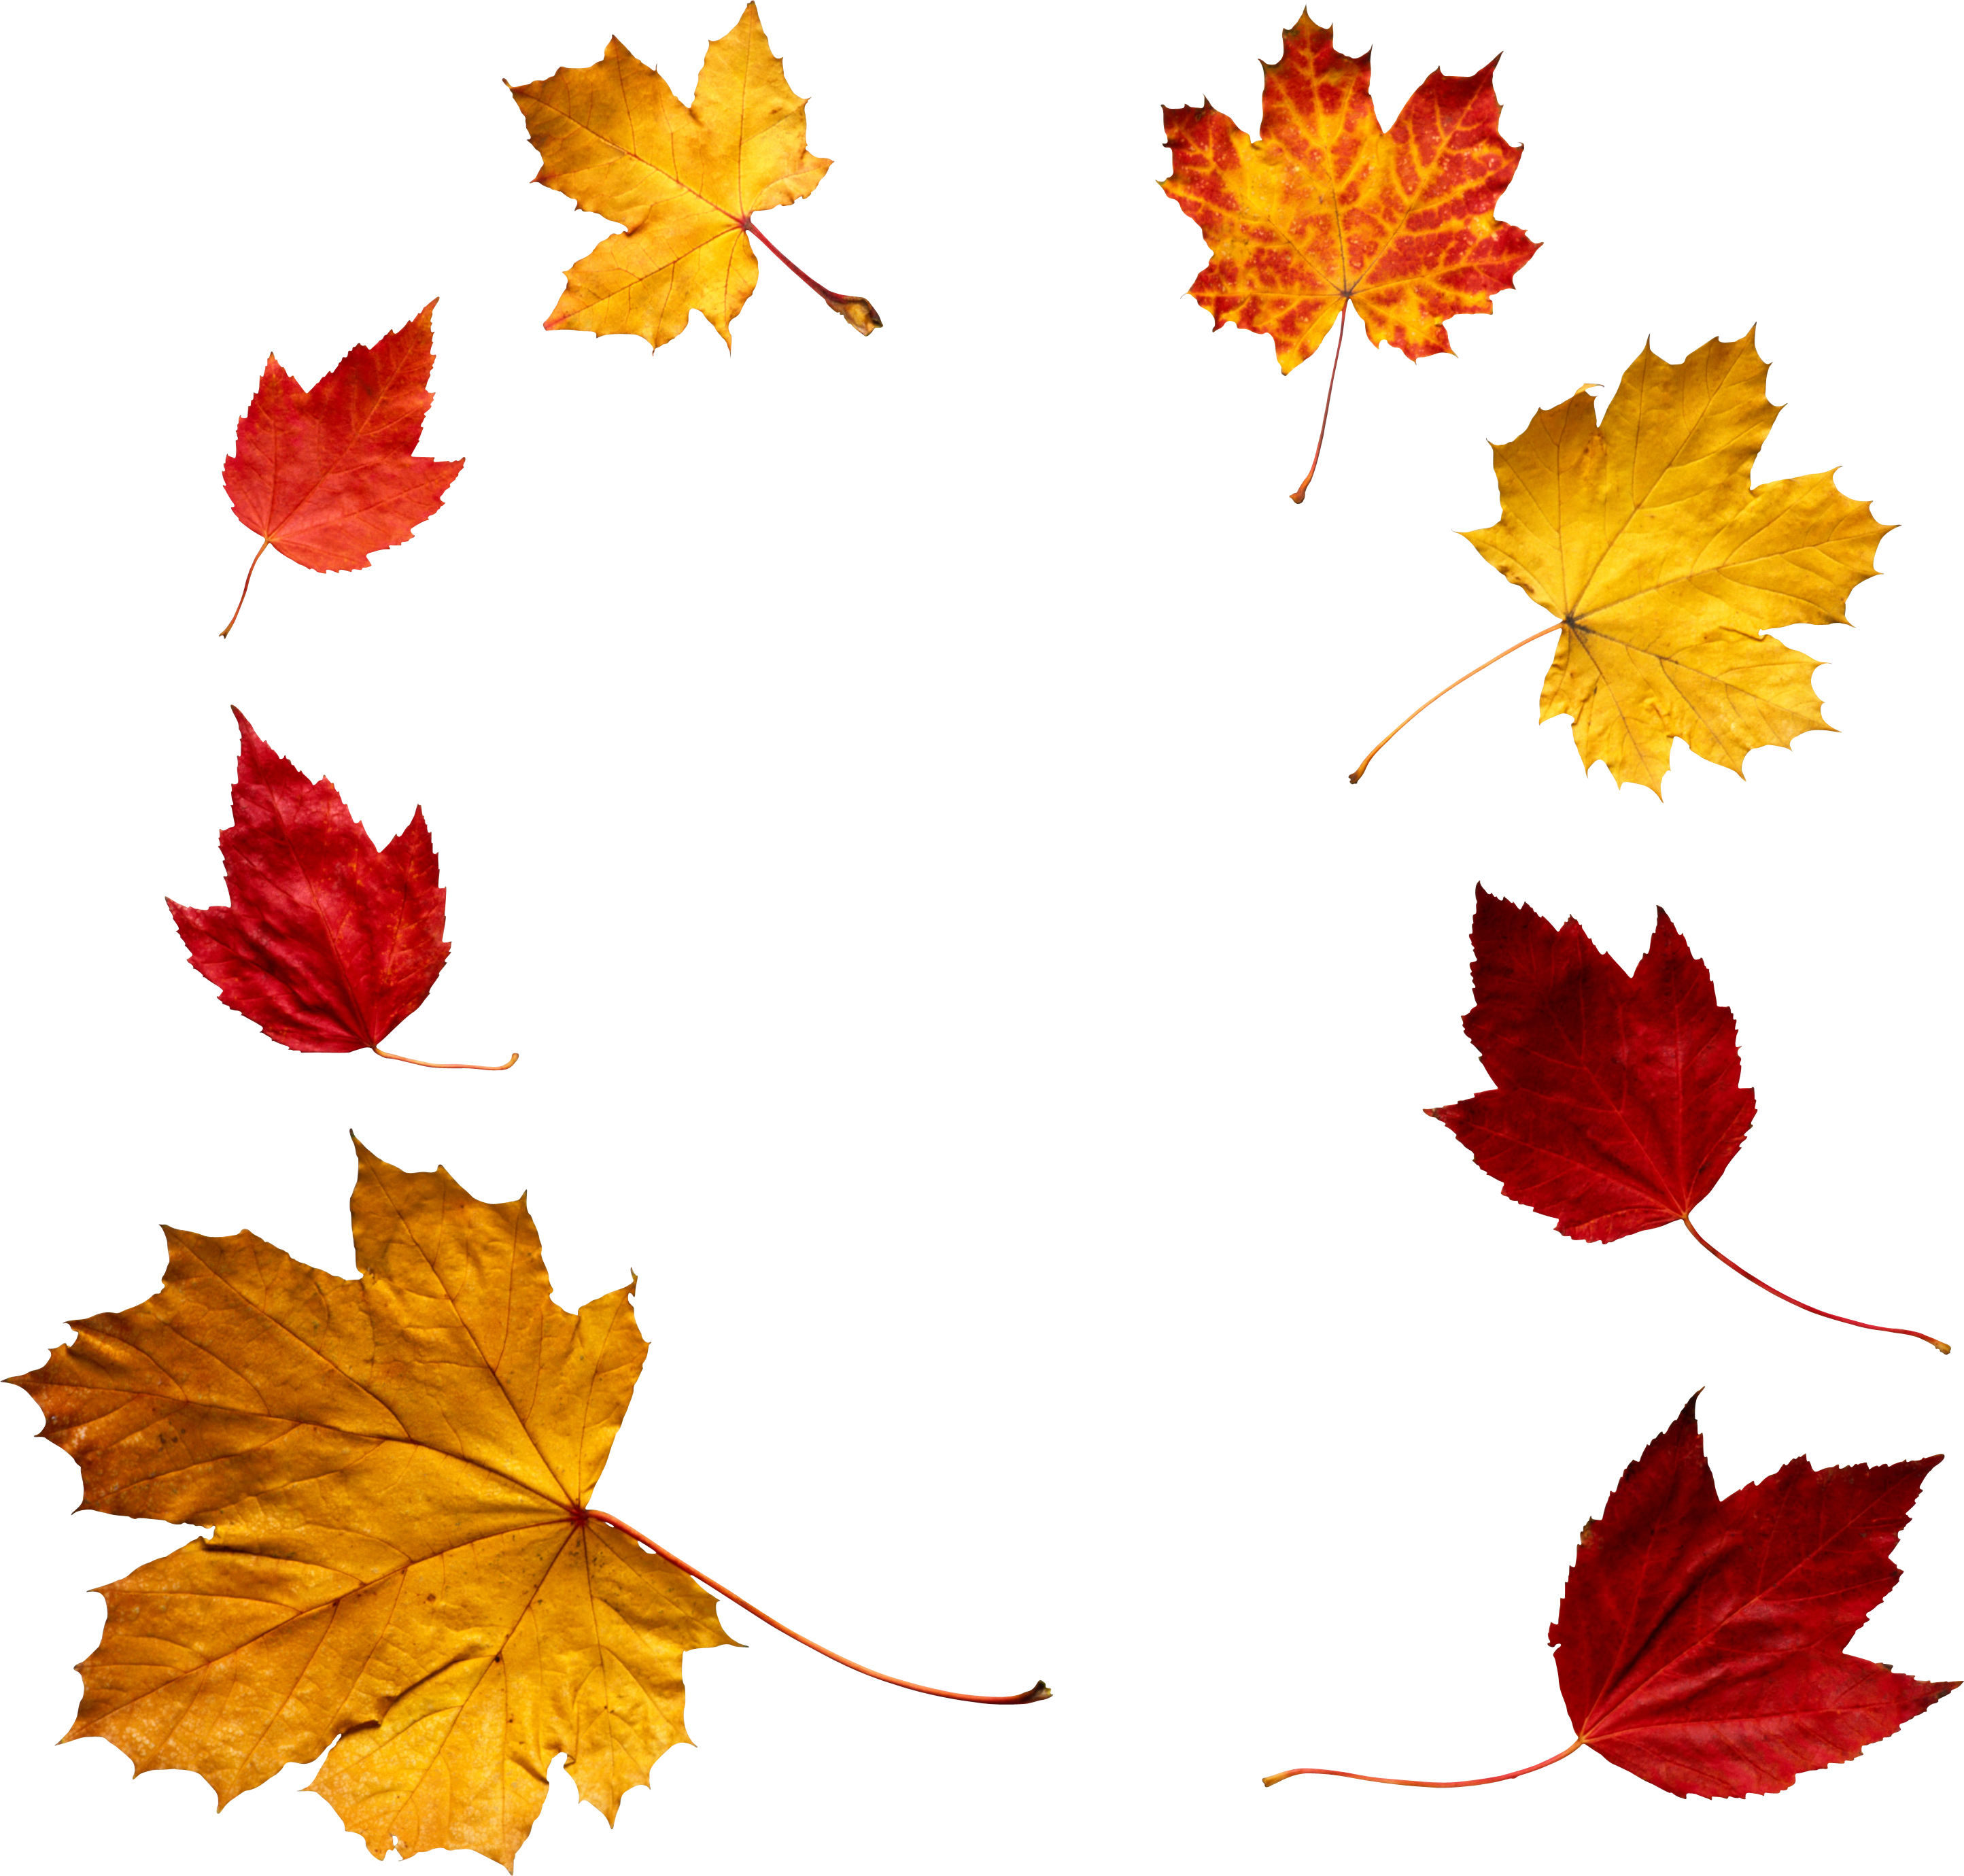 png freeuse stock Maple leaf november free. Autumn leaves clipart transparent background